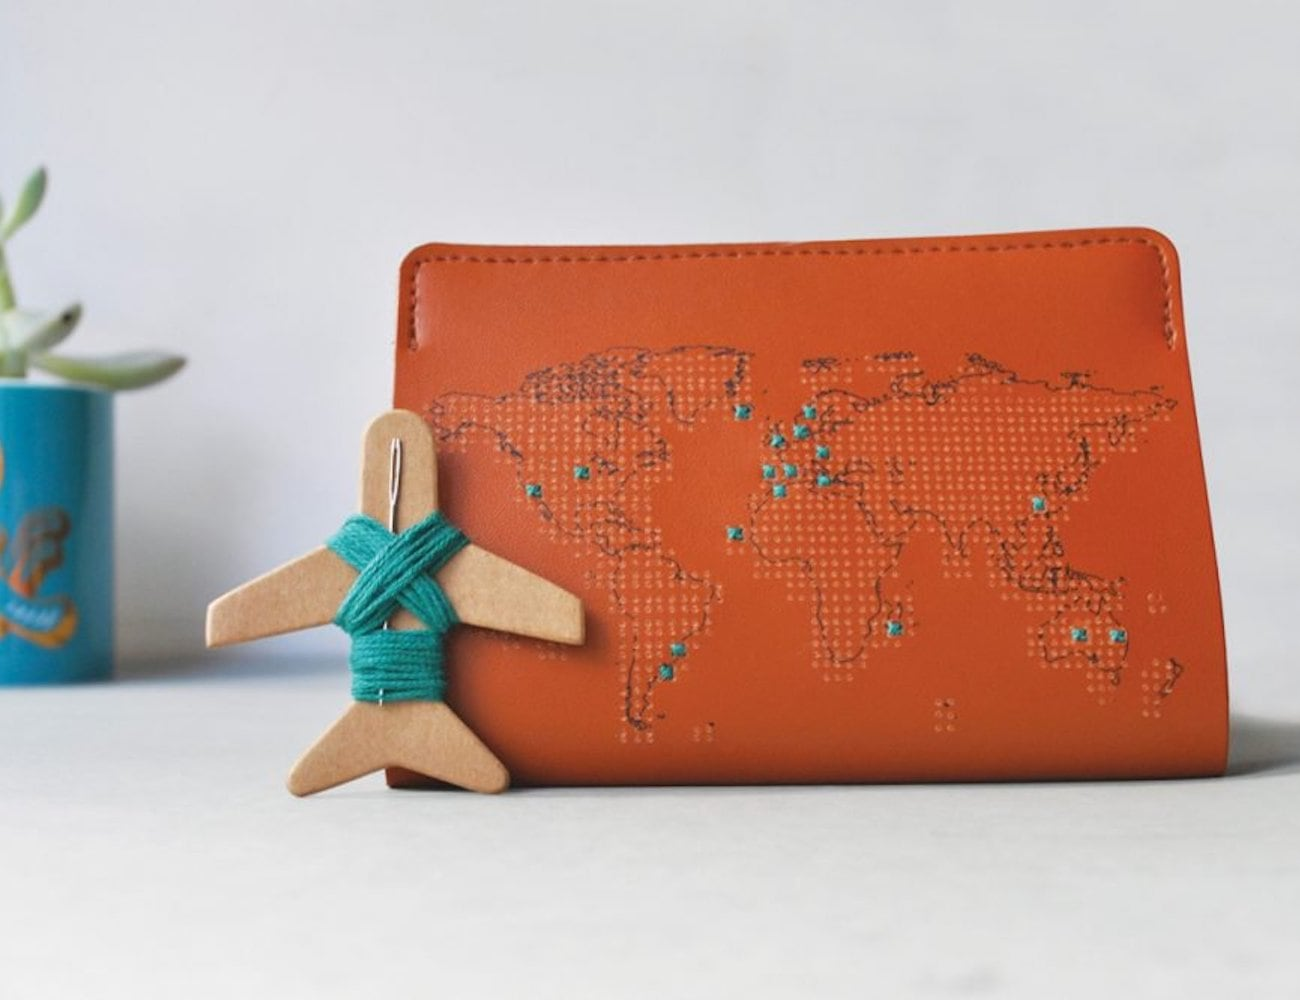 Chasing Threads Stitch Travel Passport Cover keeps track of where you've been